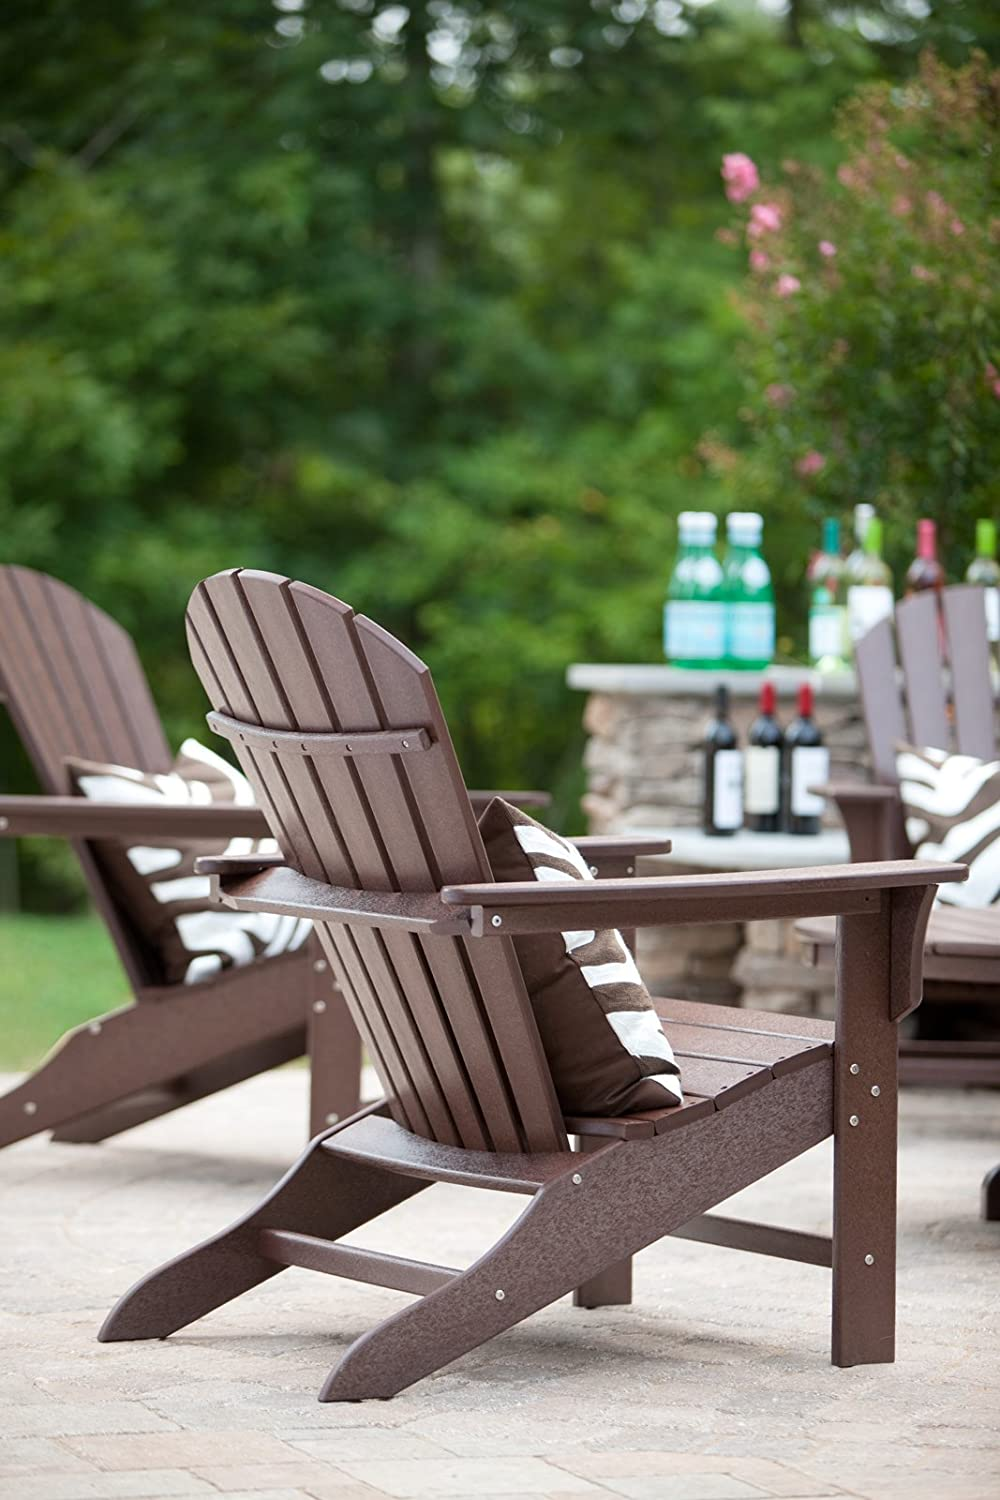 Trex Outdoor Furniture Cape Cod Adirondack Chair, Vintage Lantern : Garden & Outdoor